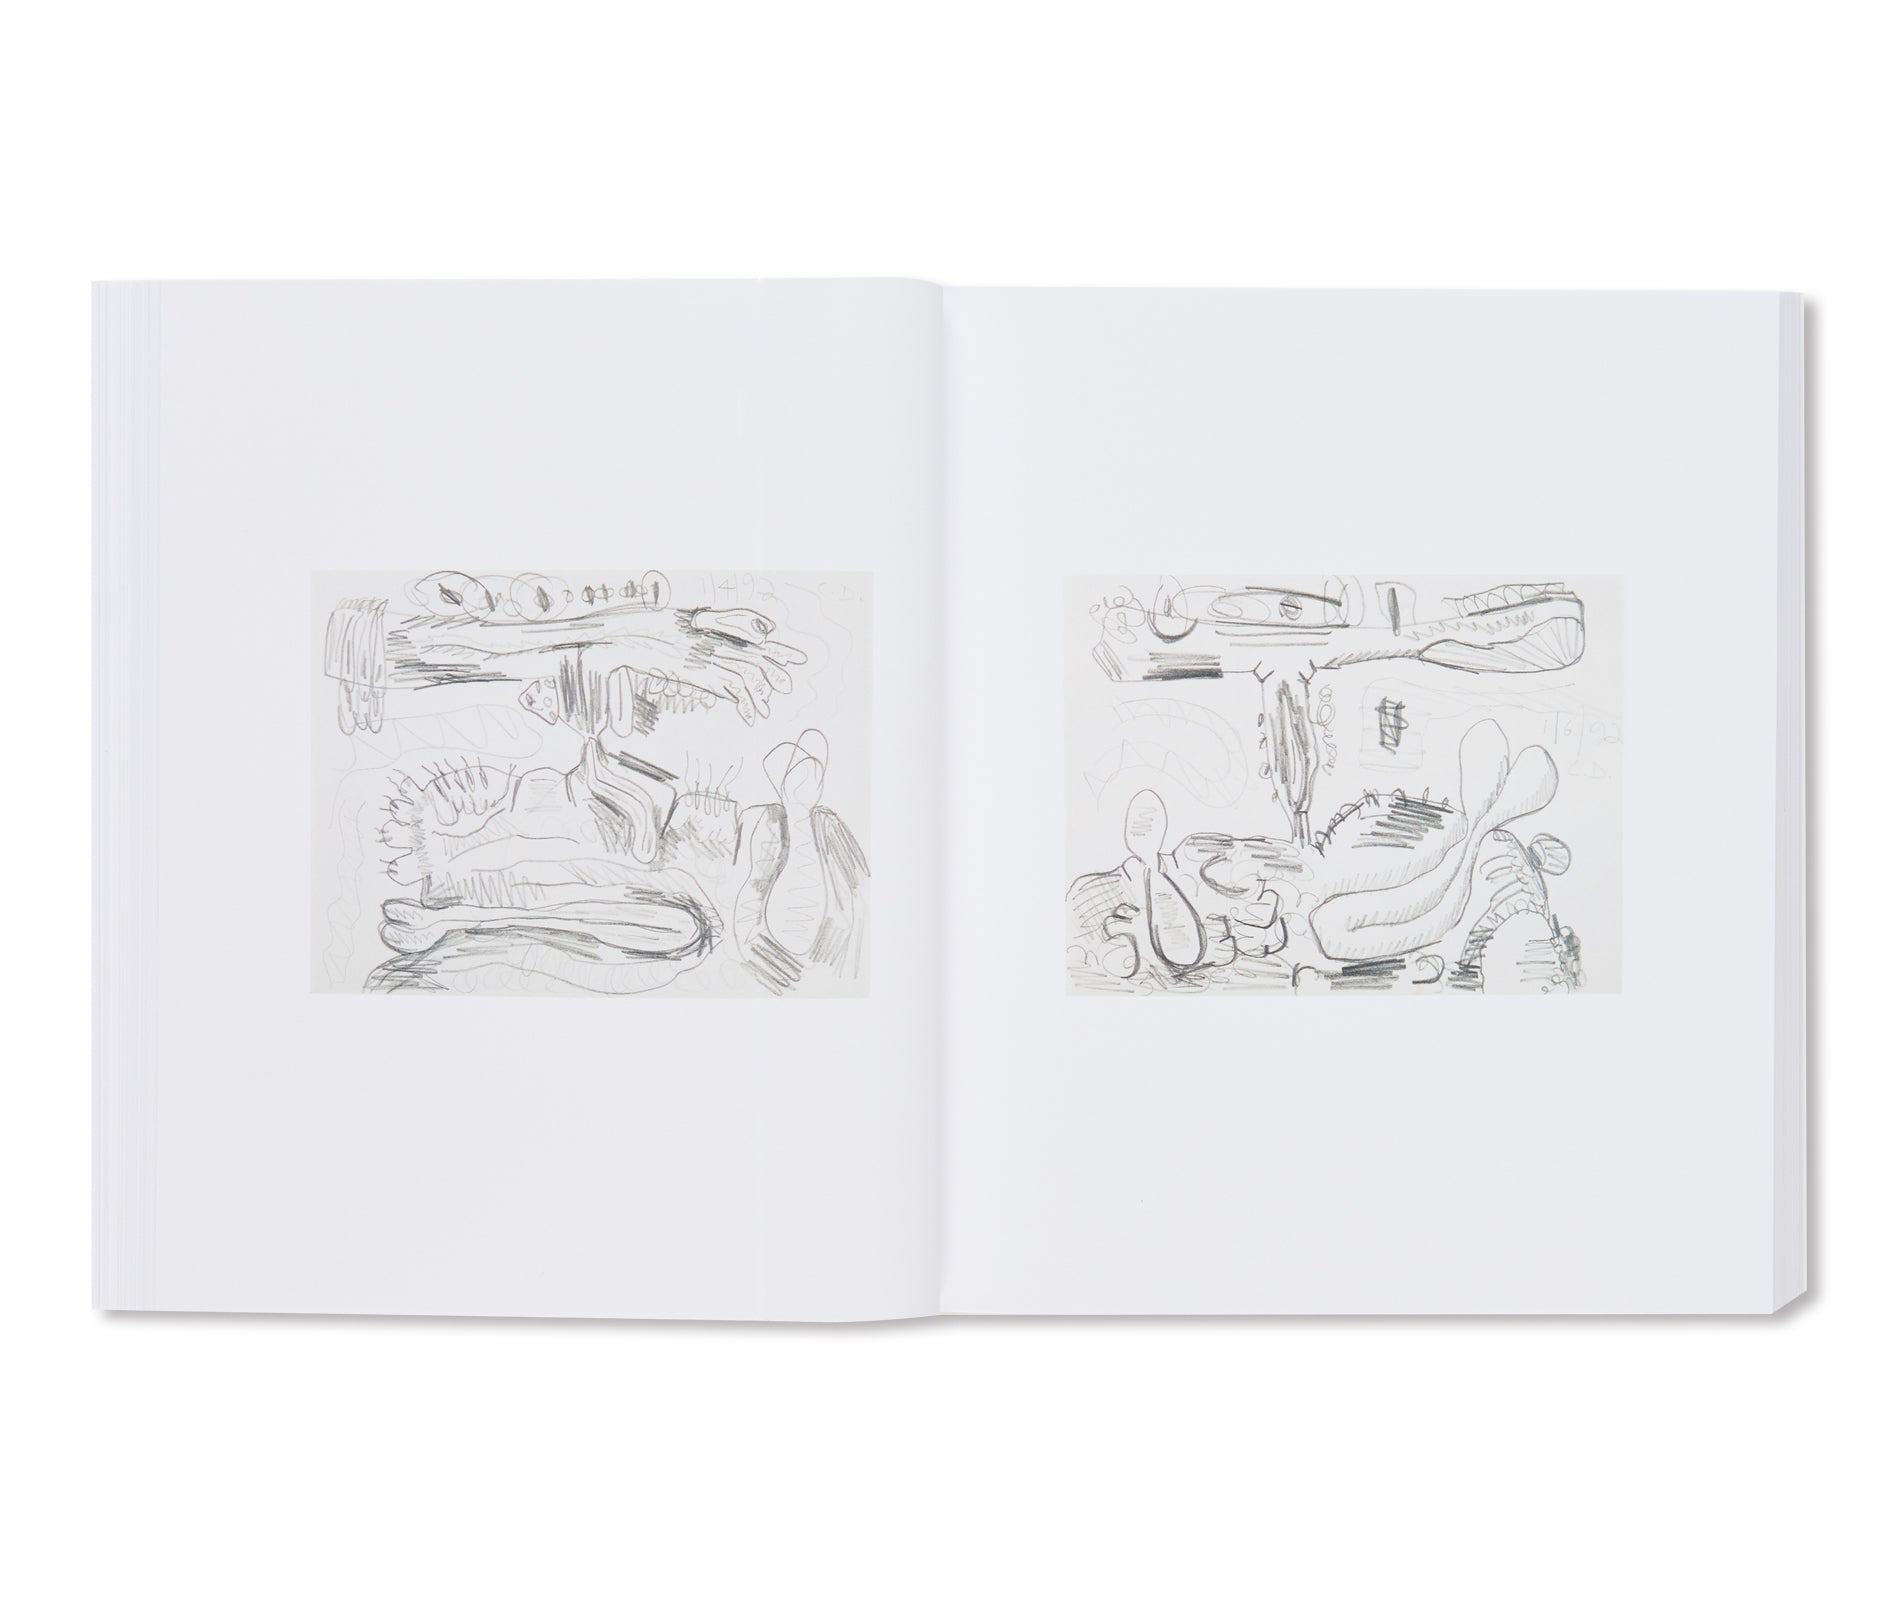 A DRAWING SURVEY by Carroll Dunham